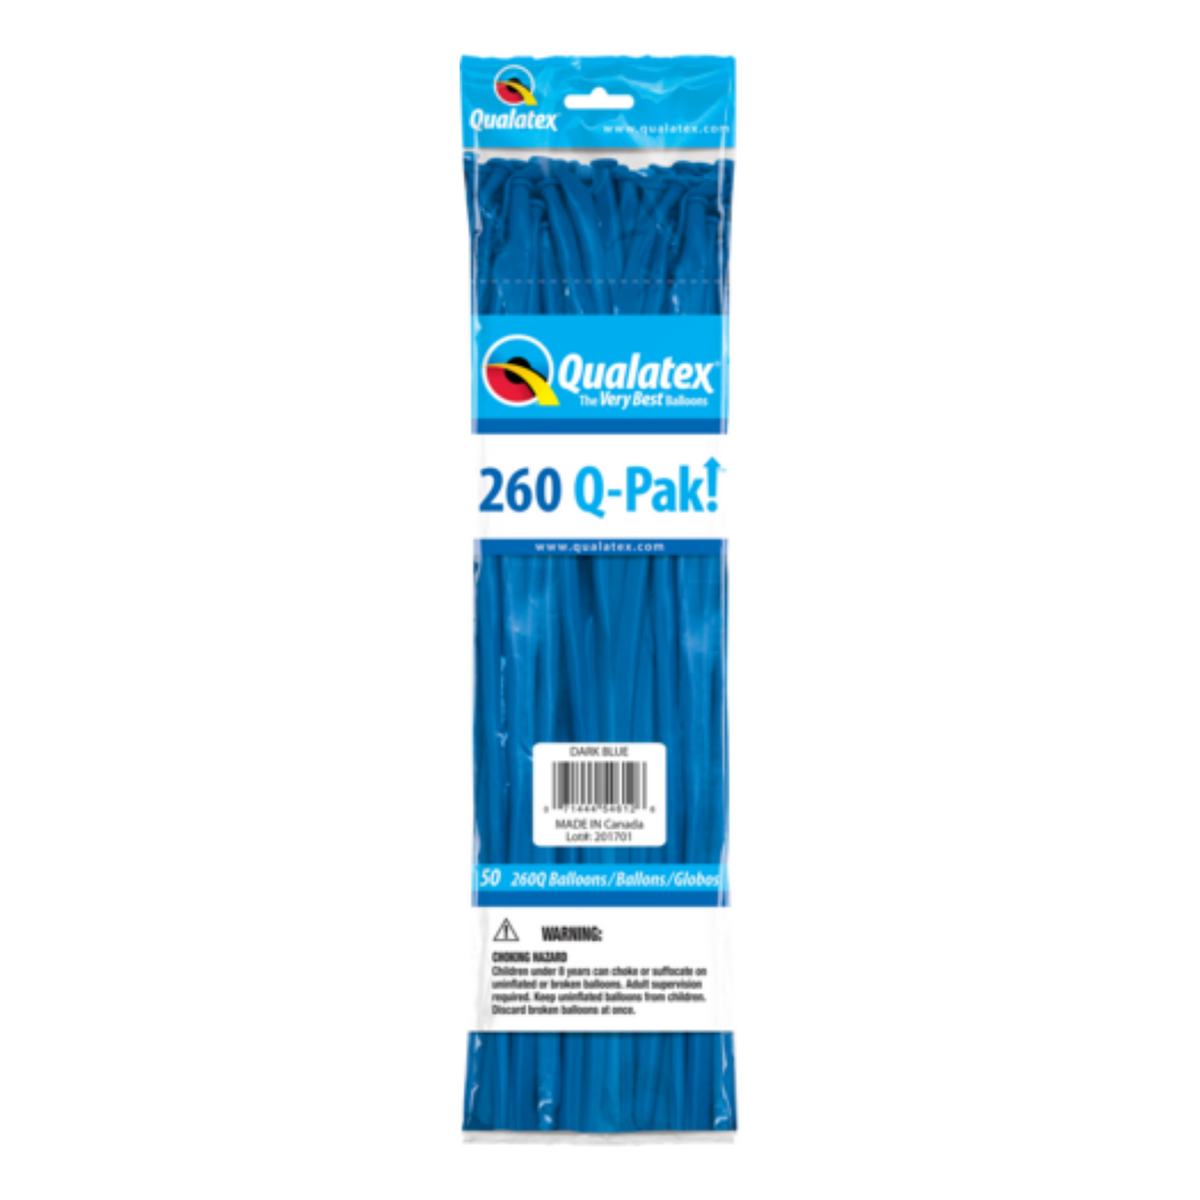 Qualatex 260 Q-Pak (50 pack) BLUE DARK